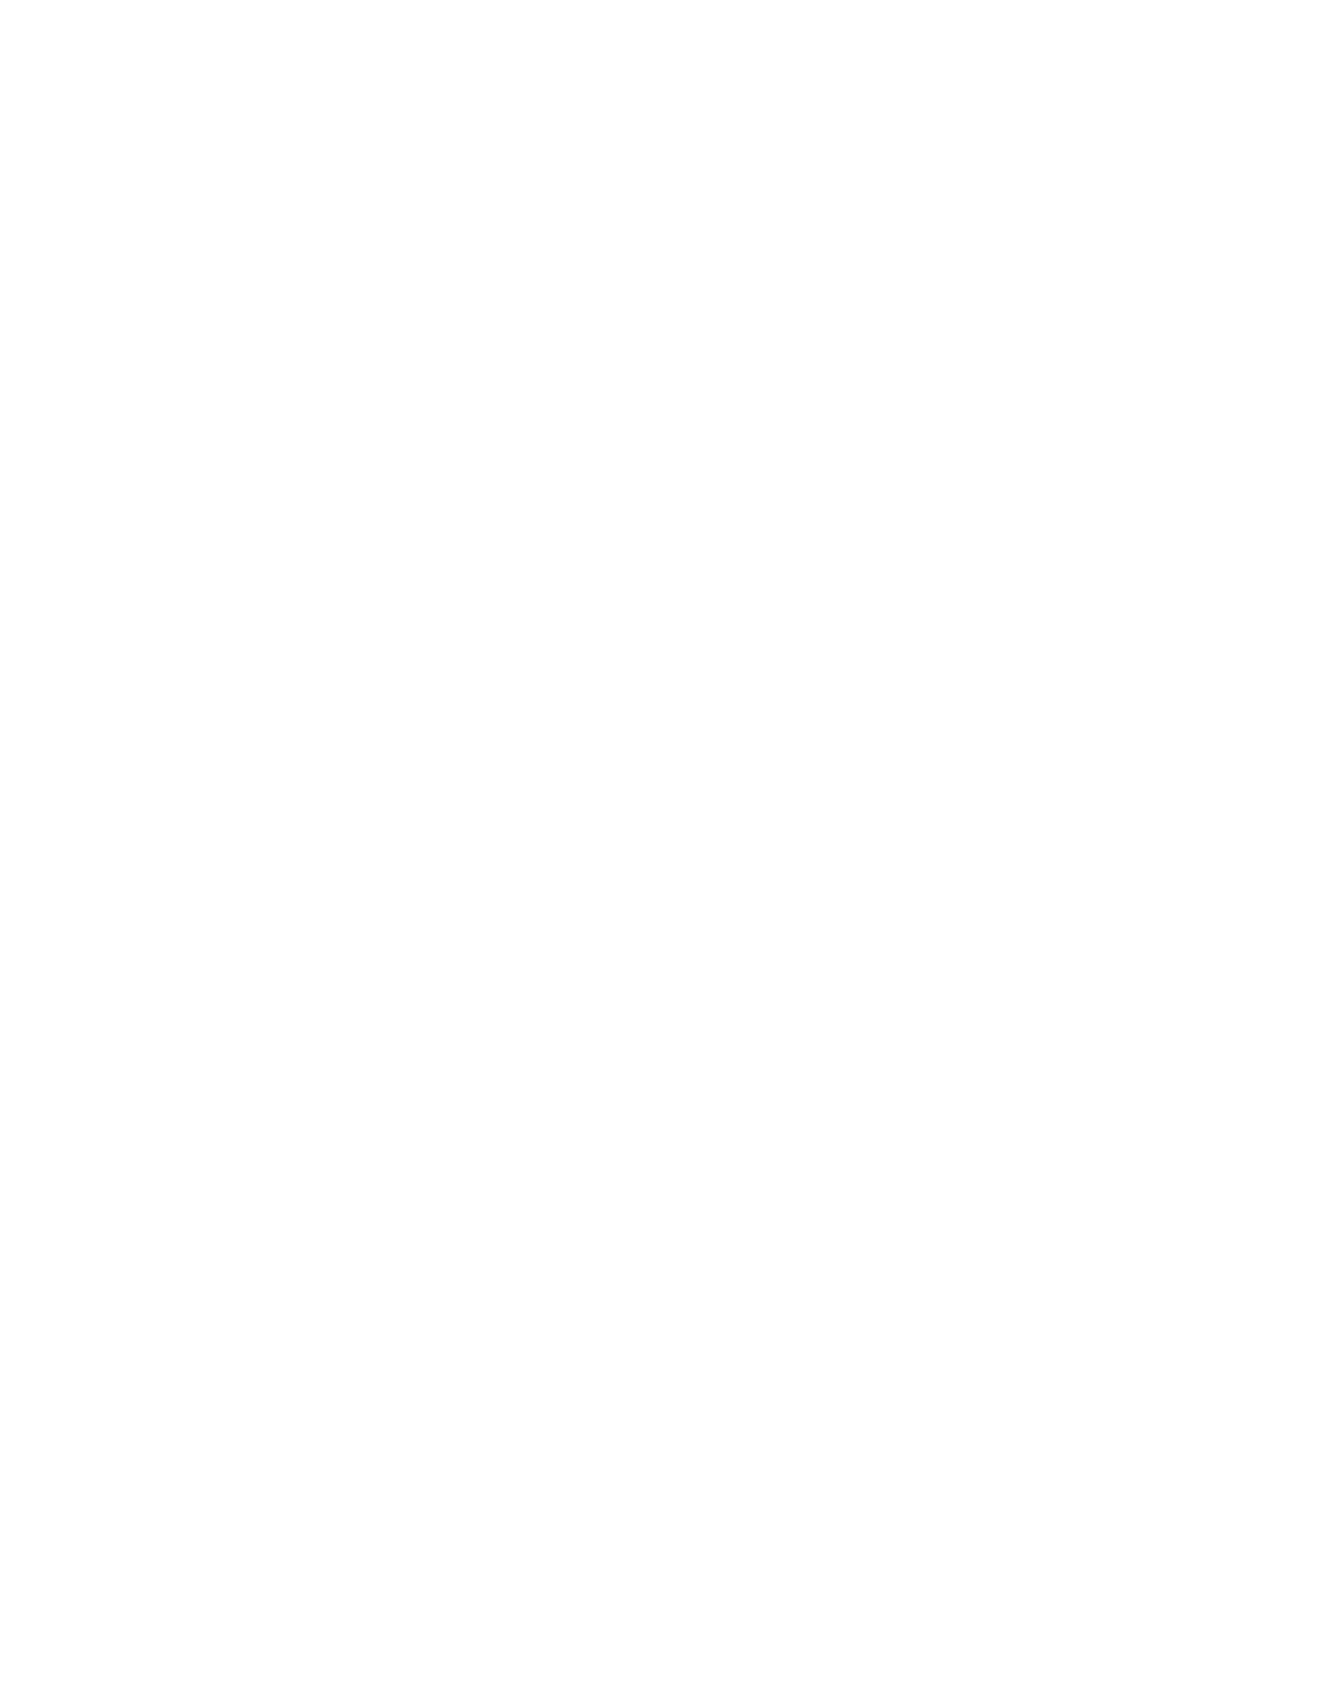 [Translate to Englisch:] PEFC